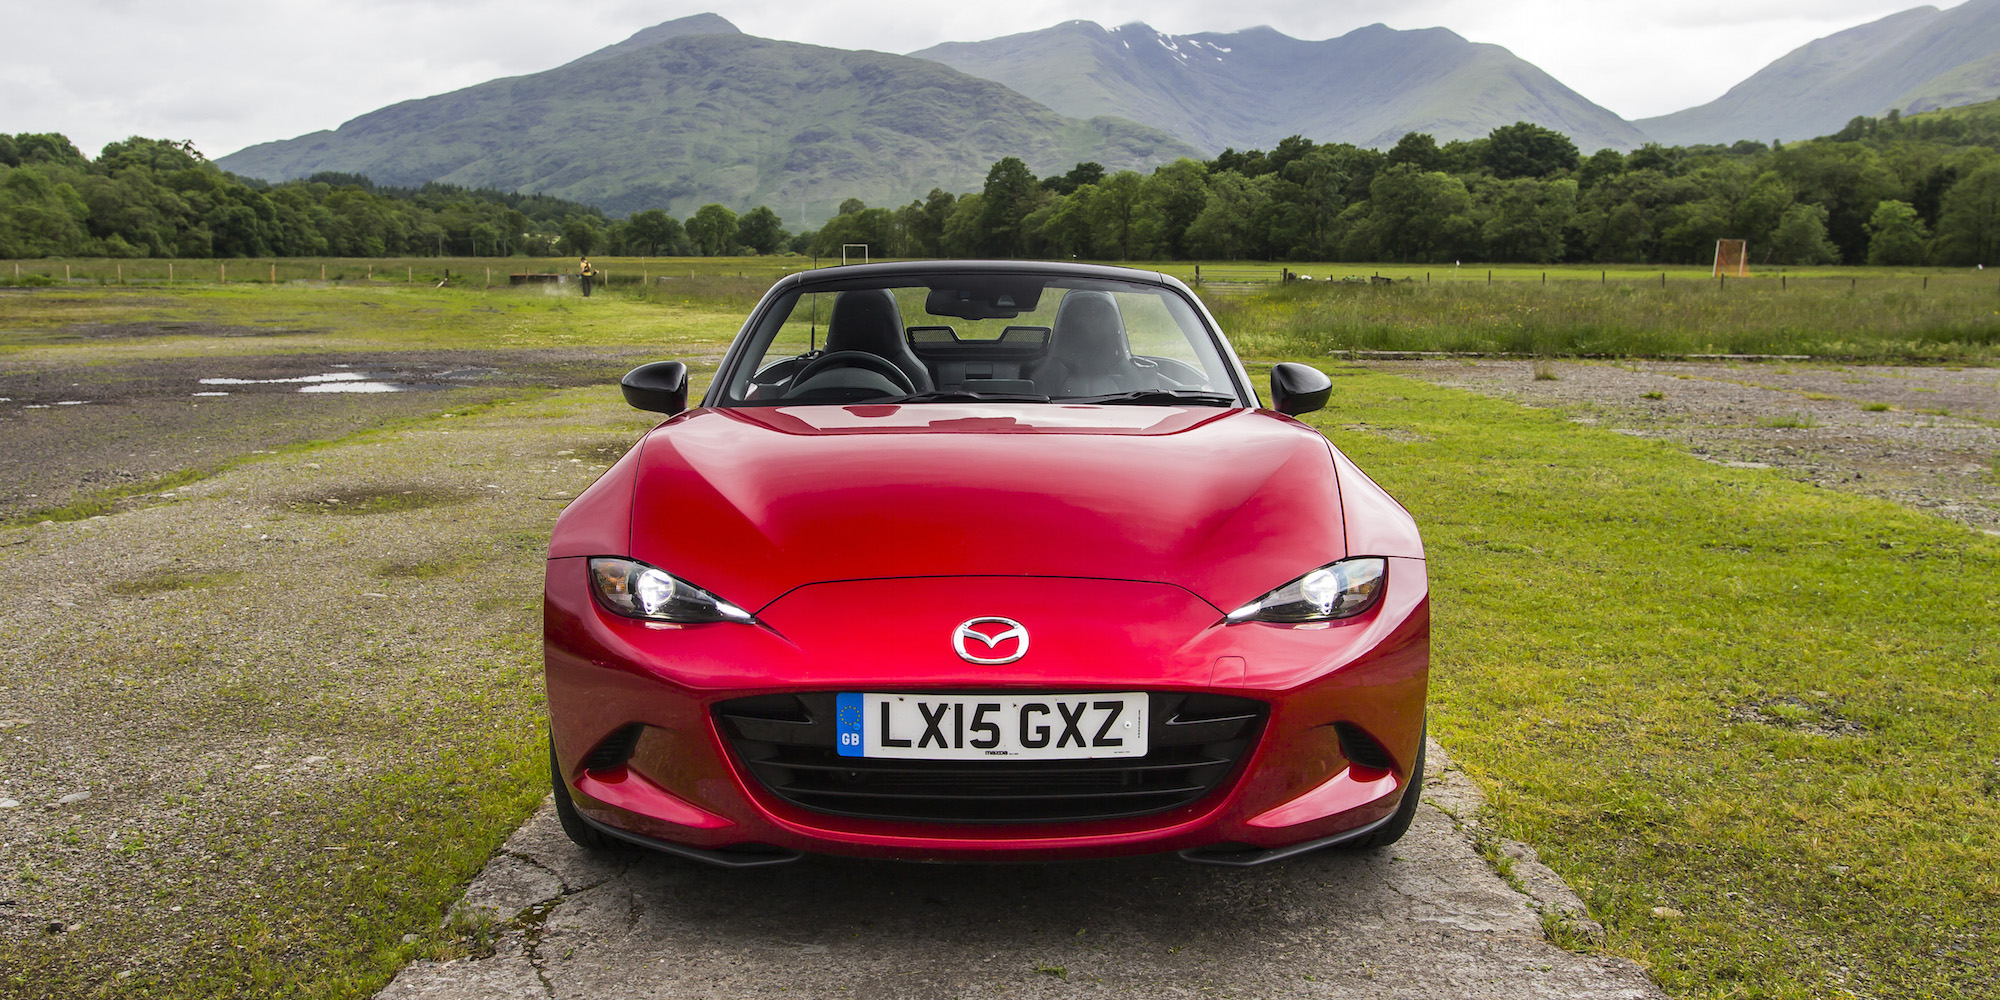 2016 Mazda Mx 5 Front End Design (Photo 20 of 31)